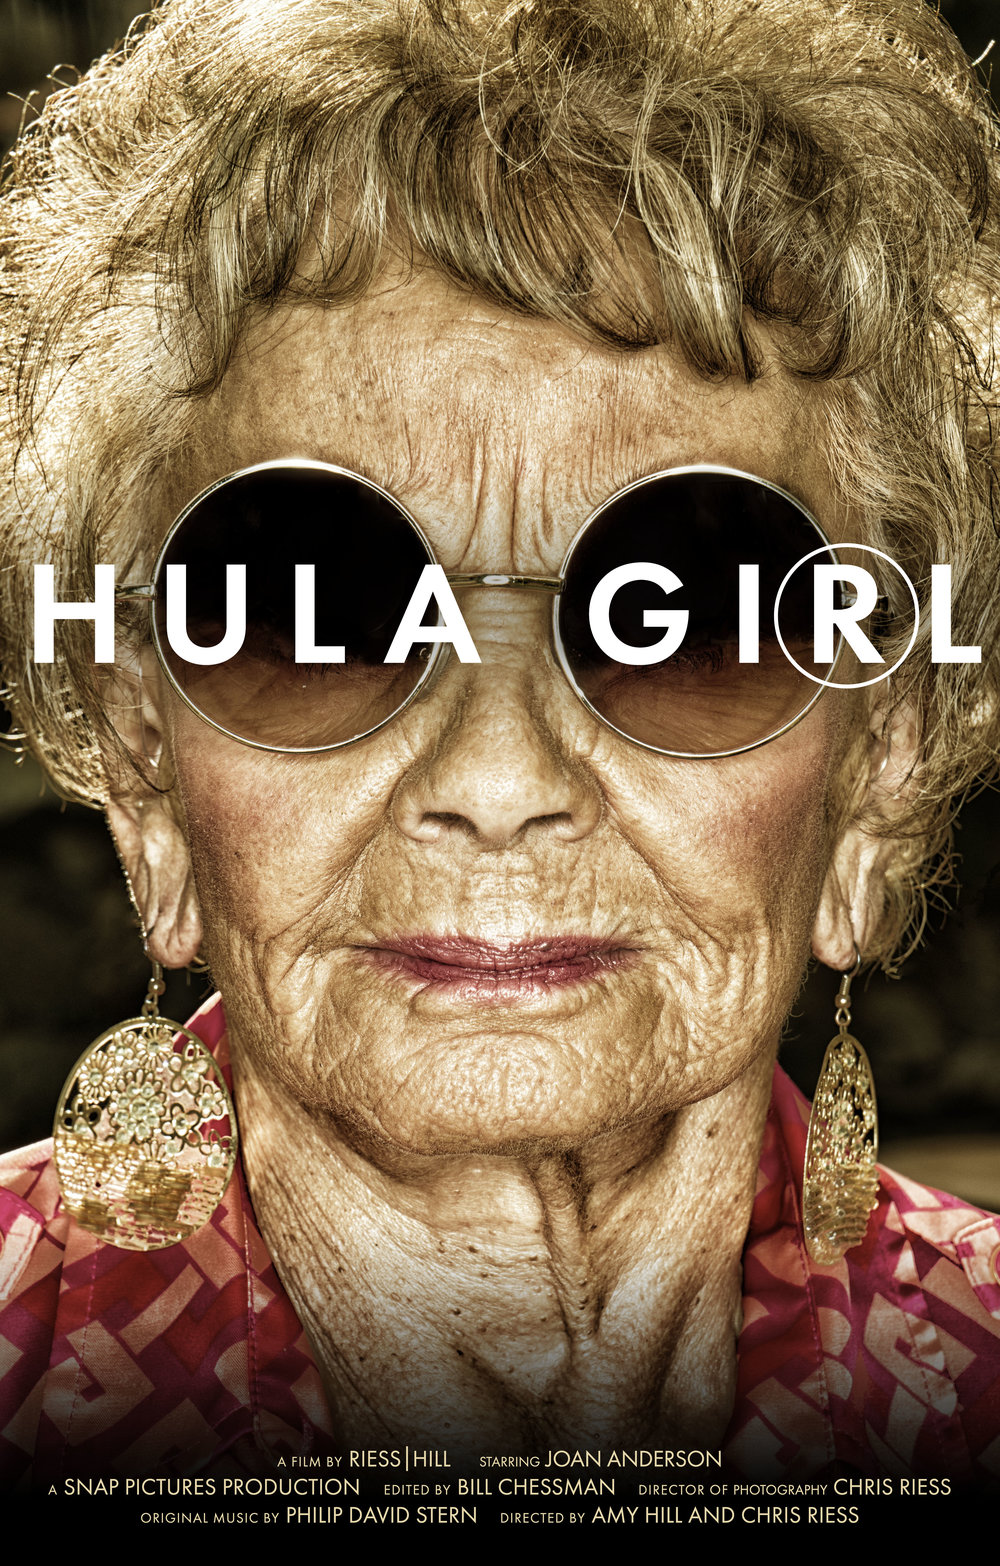 HulaGirl-Poster-no laurels-Compressed.jpg